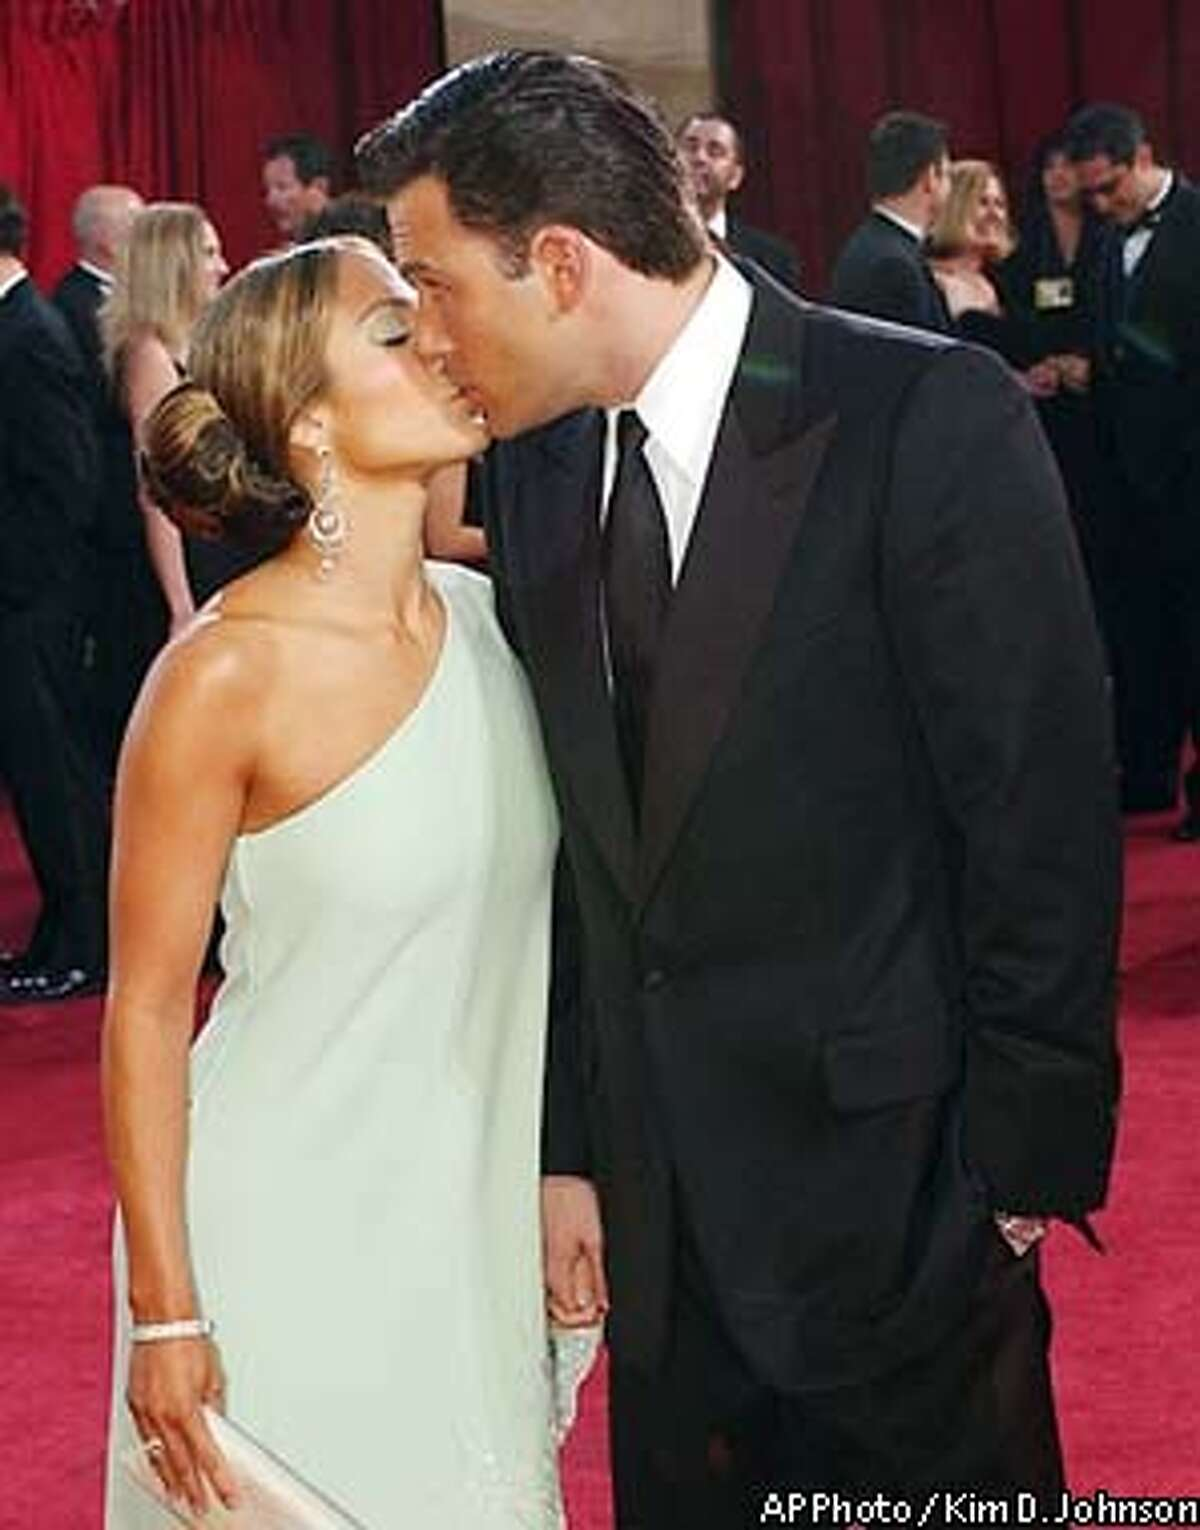 Actors Jennifer Lopez and her fianc Ben Affleck kiss during their arrival for the 75th annual Academy Awards Sunday, March 23, 2003, in Los Angeles where they will be presenters during the show. (AP Photo/(AP Photo/Kim D. Johnson)